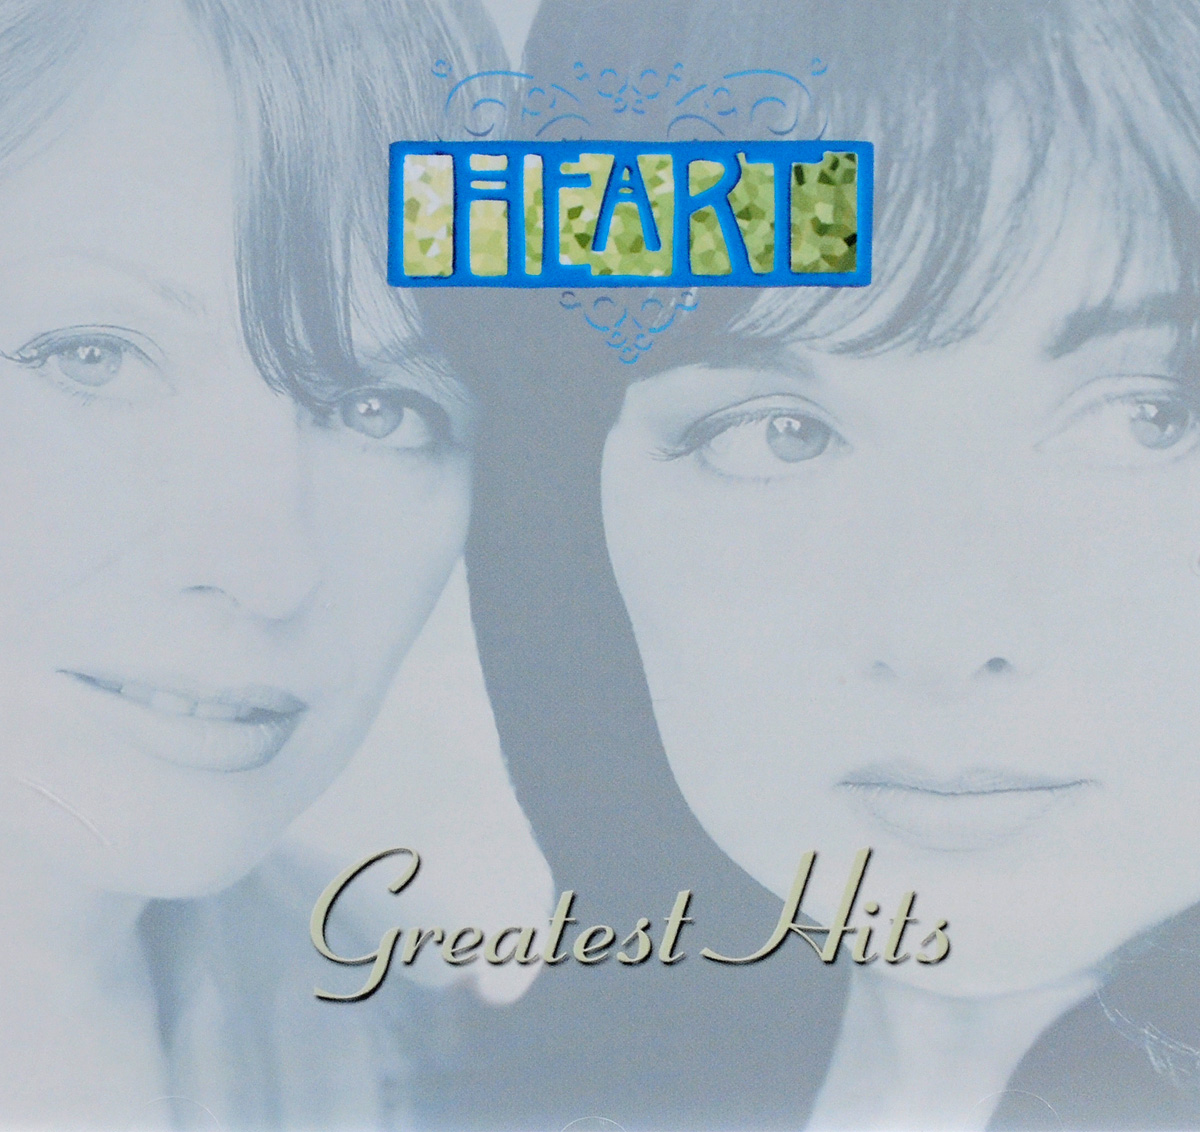 Heart Heart. Greatest Hits. 1985-1995 heart heart greatest hits 1985 1995